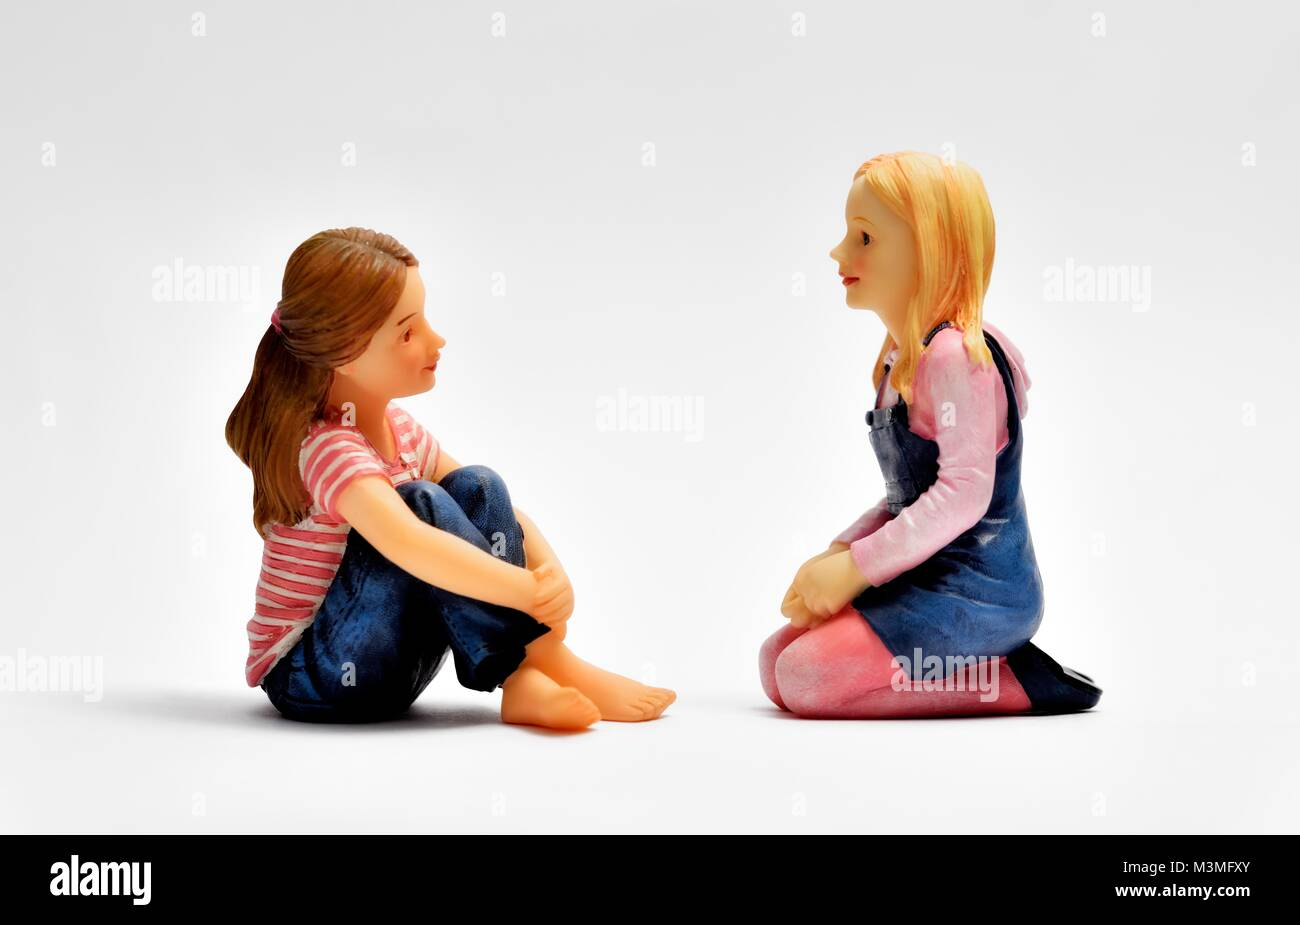 Two miniature figurine girls facing each other - Stock Image